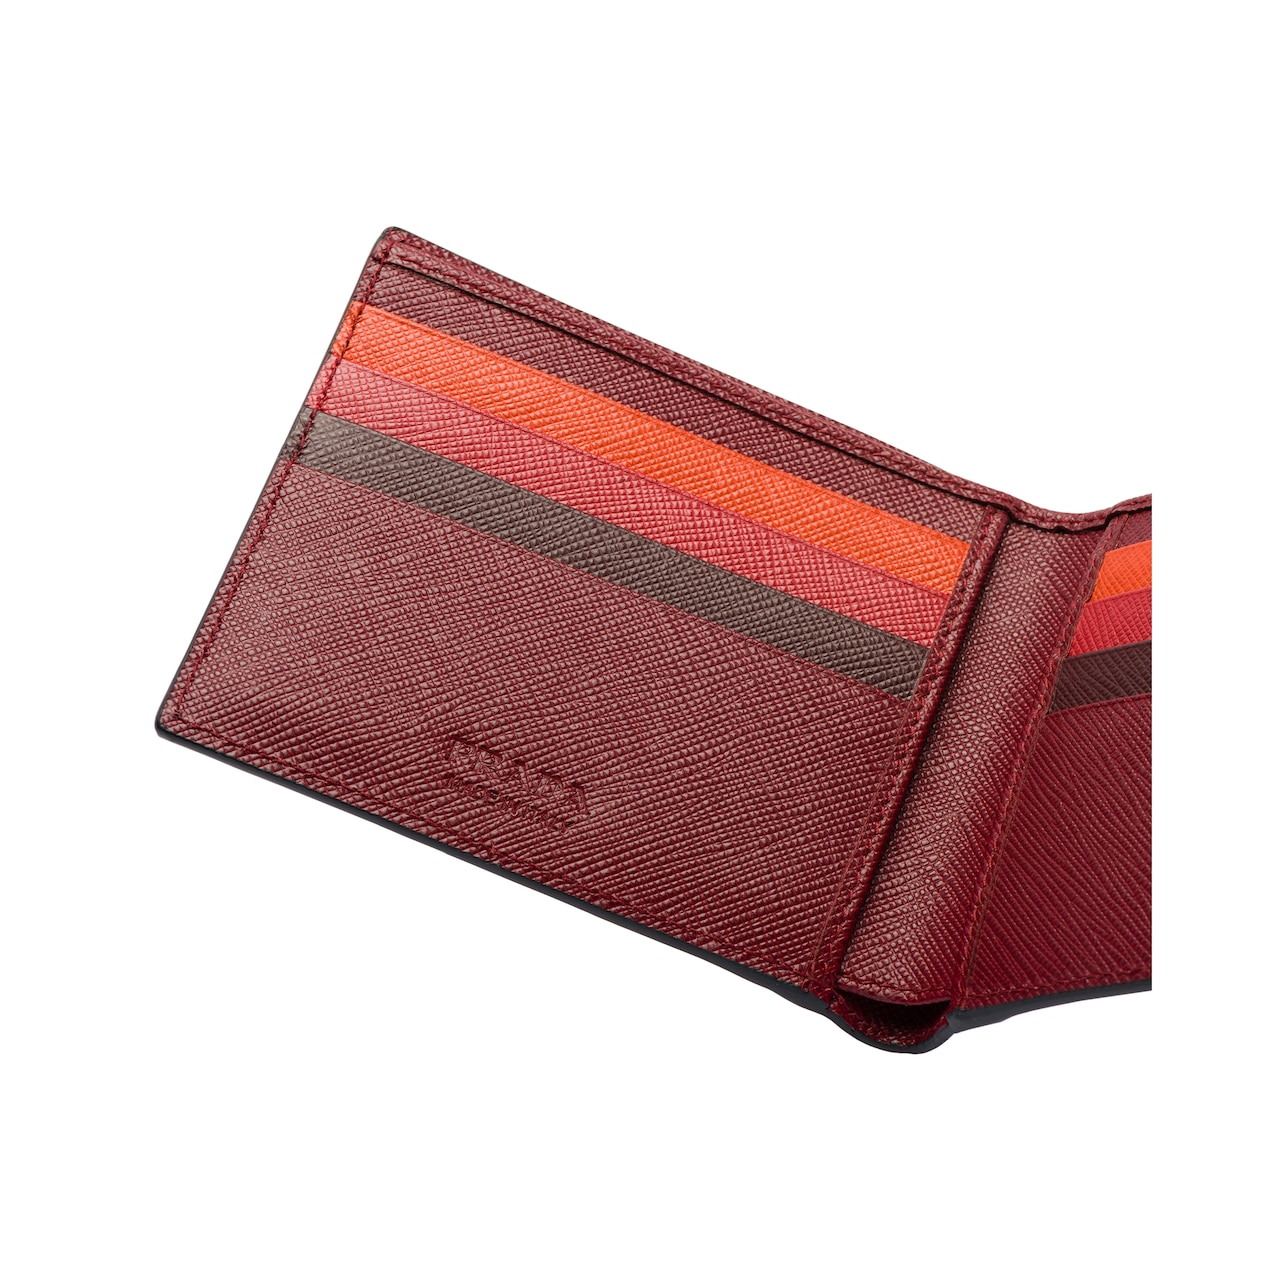 Prada Saffiano leather wallet 6